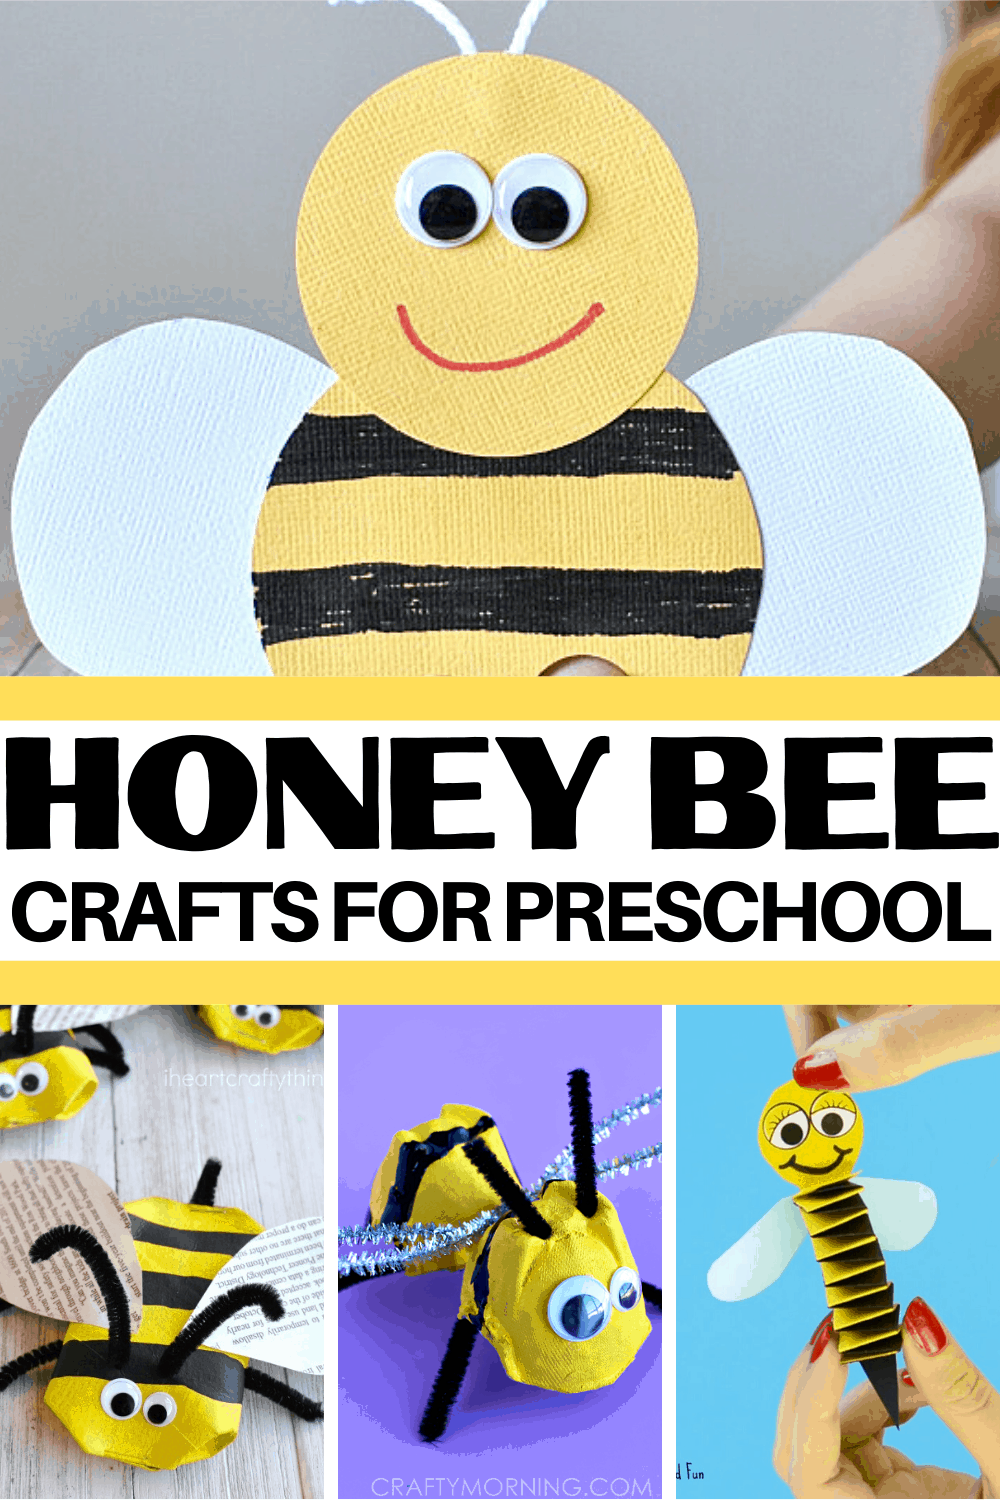 Fly on over and check out these adorable bee crafts for kids. They are perfect for your spring and summer preschool crafting sessions.